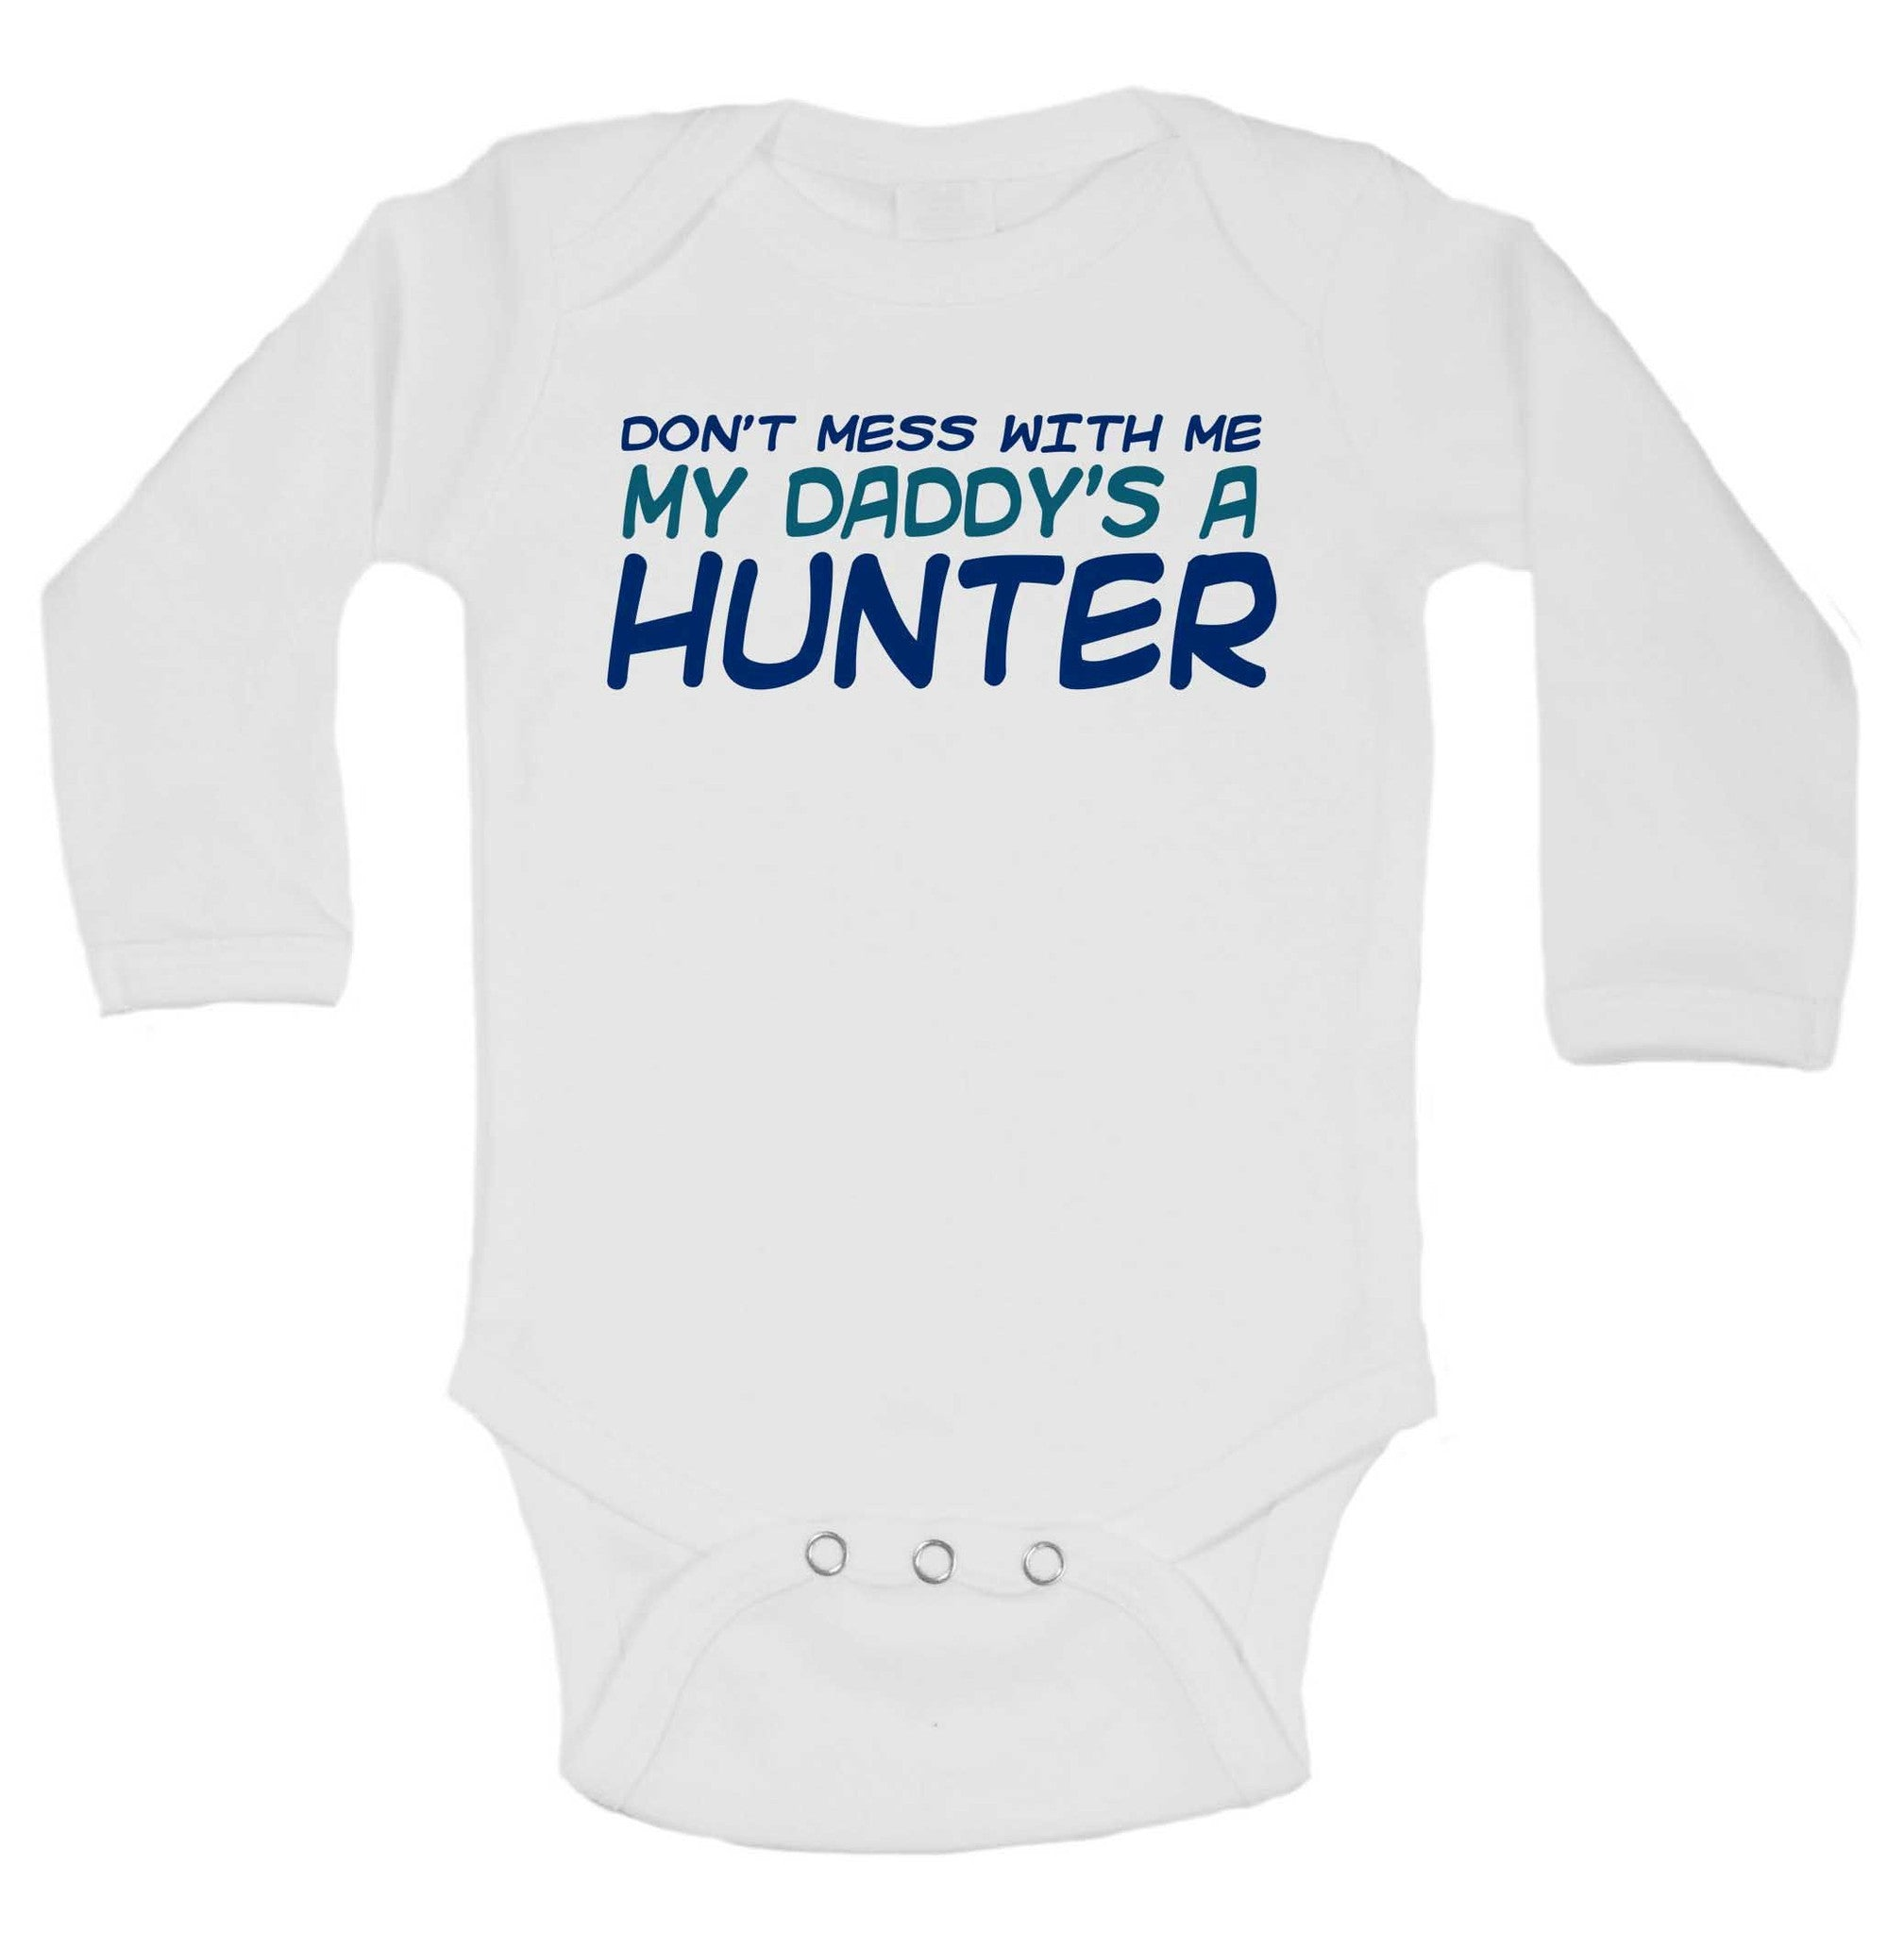 Don't Mess With Me My Daddy's A Hunter Funny Kids Onesie - B222 - Funny Shirts Tank Tops Burnouts and Triblends  - 1